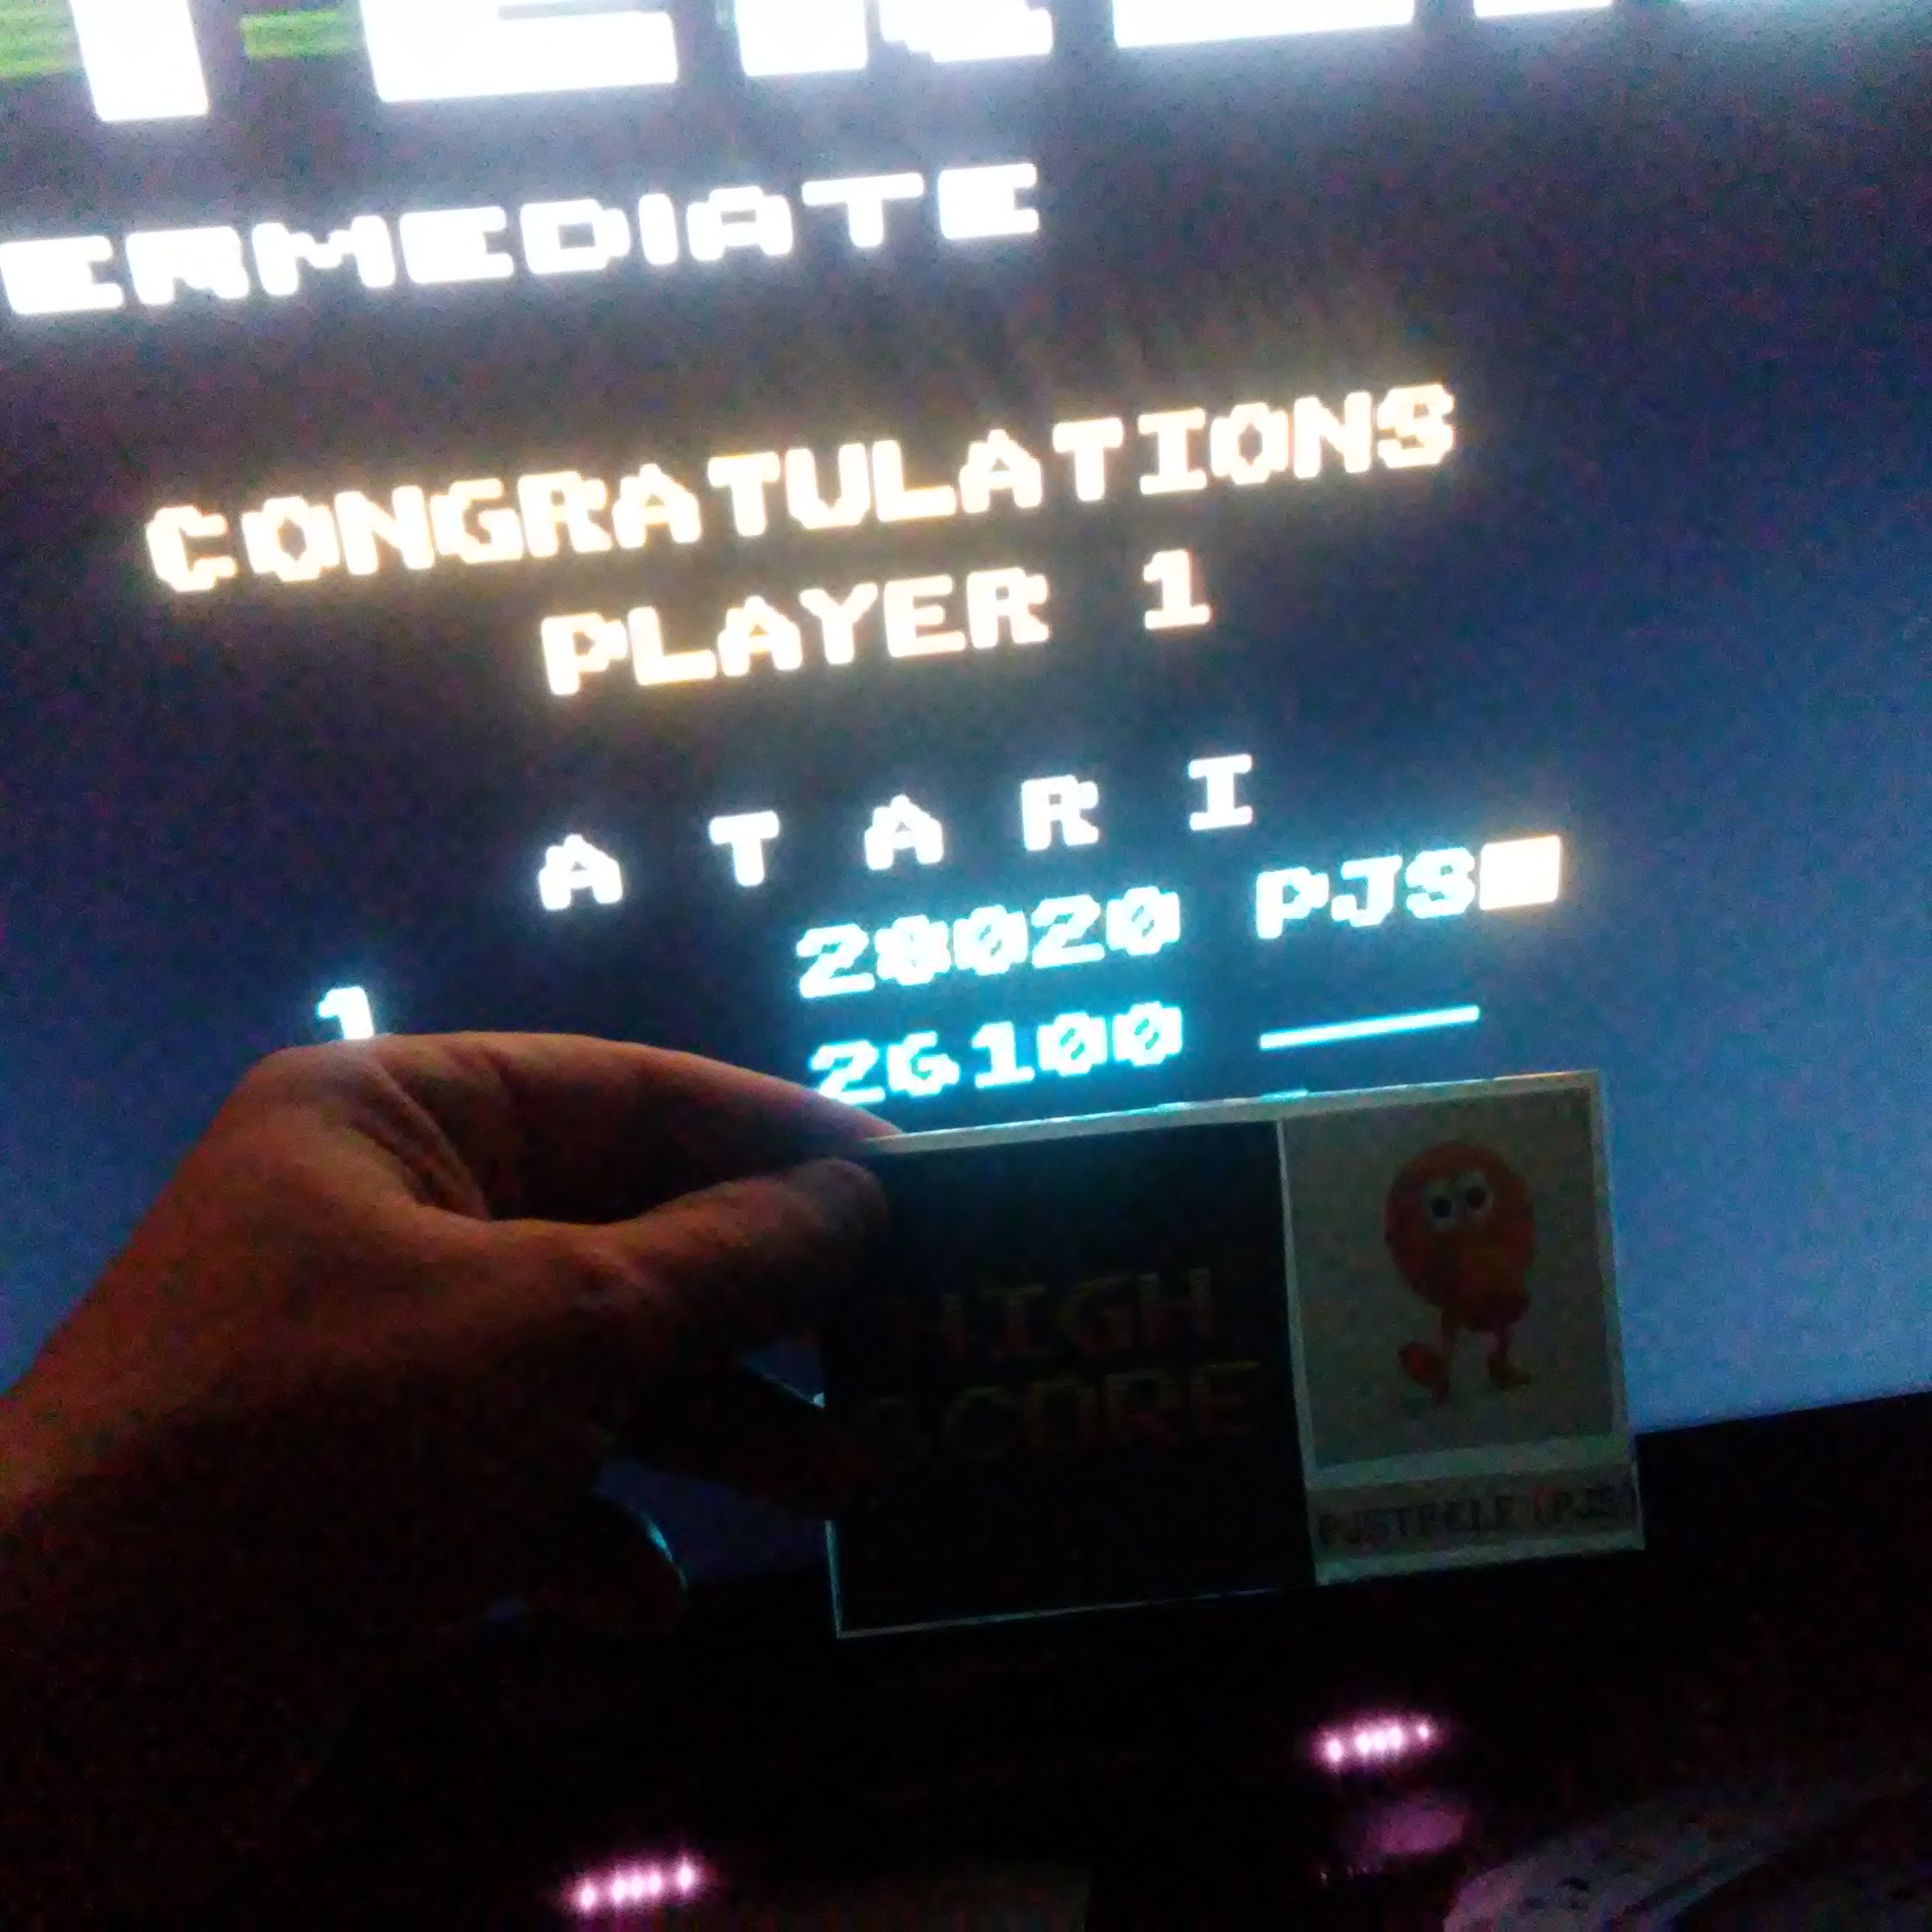 Pjsteele: Asteroids: Intermediate (Atari 7800 Emulated) 28,020 points on 2017-05-20 22:06:02